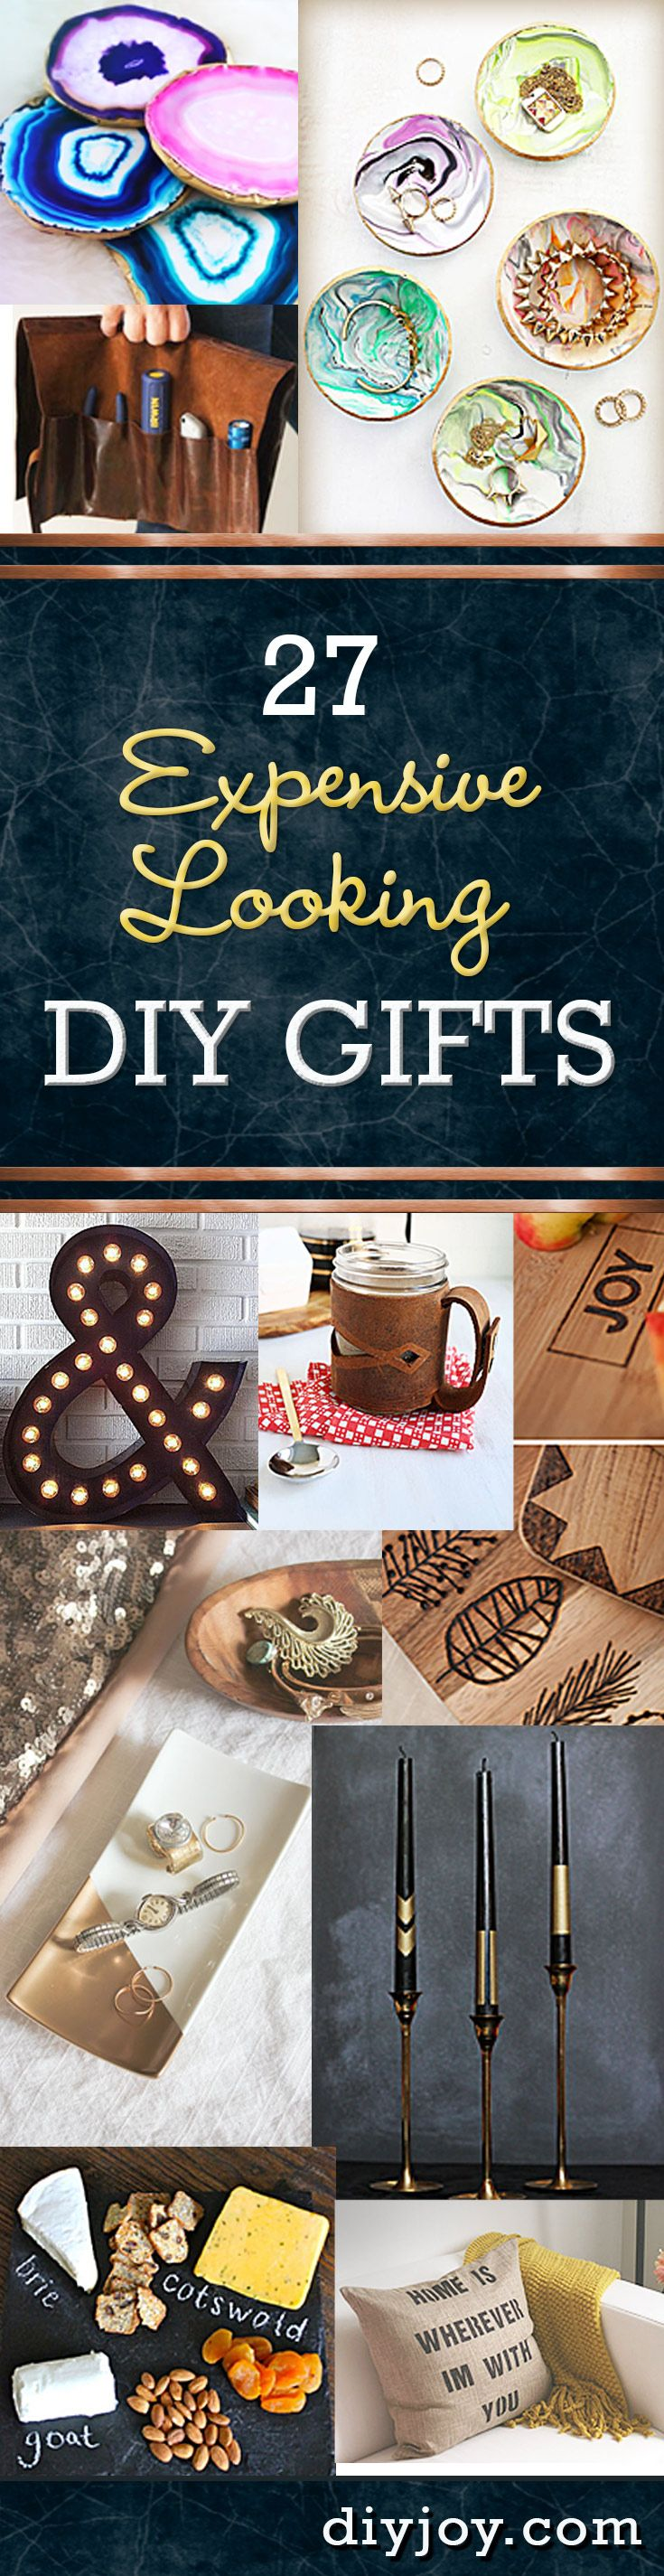 http://www.jexshop.com/ Inexpensive DIY Gifts and Creative Crafts and Projects that Make Cool DIY Gift Ideas CHEAP!